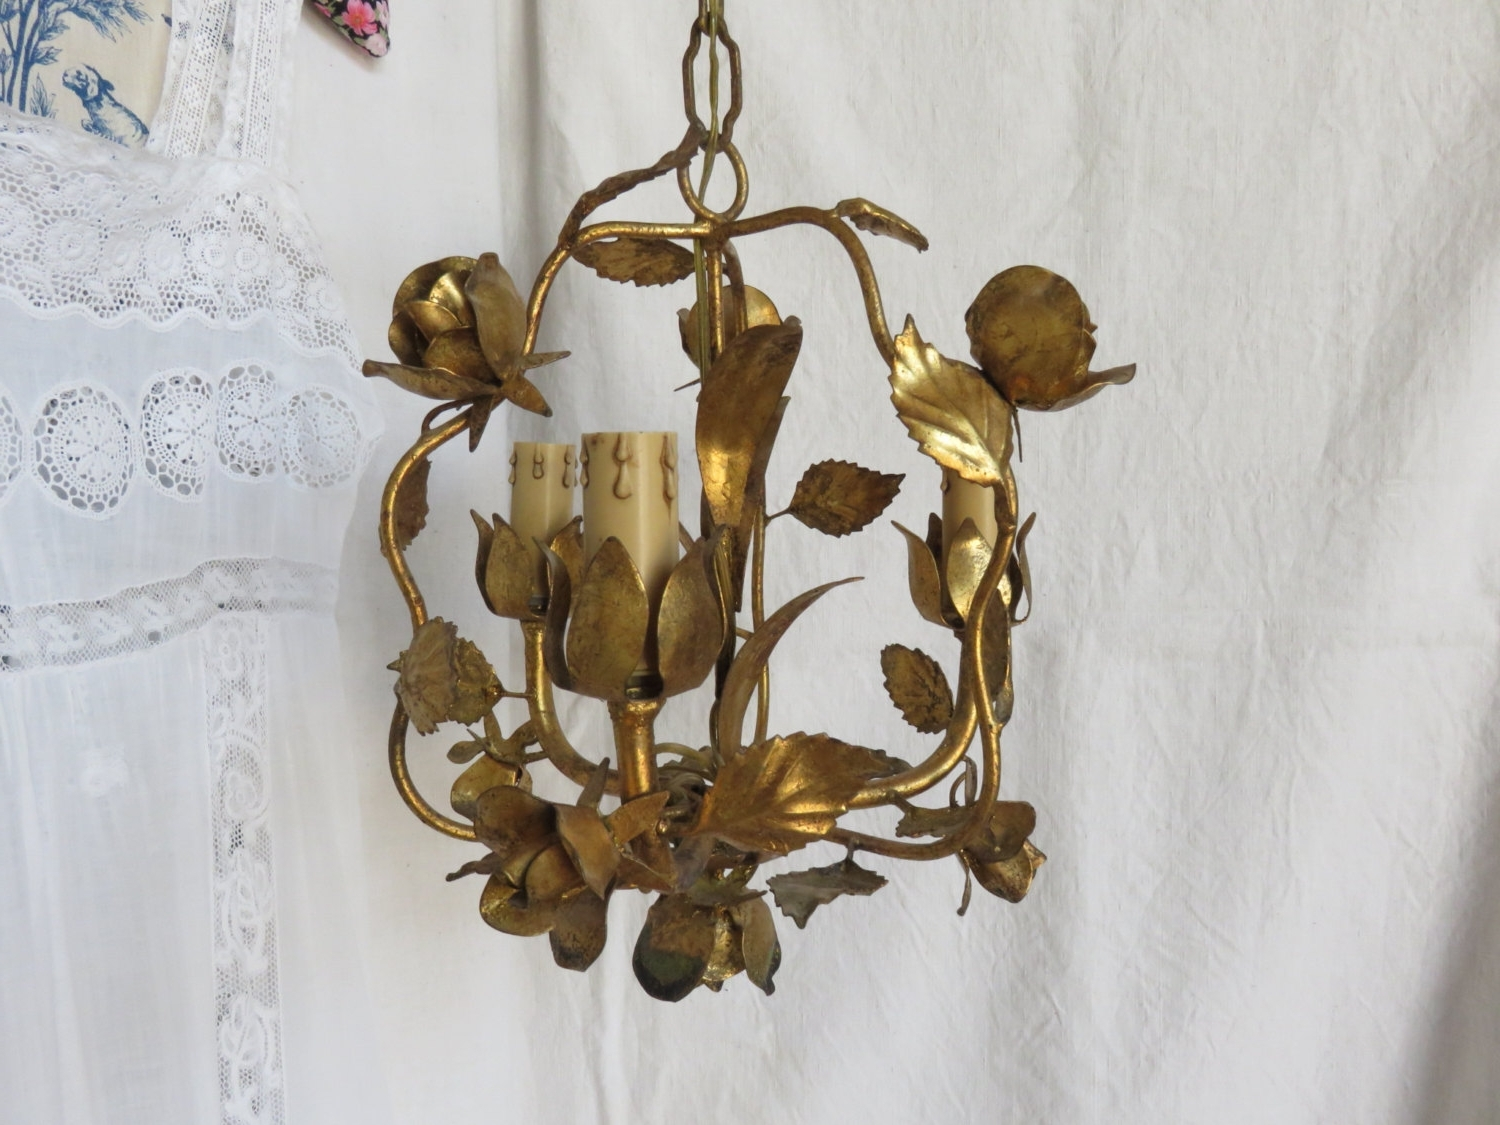 Favorite Vintage French Chandeliers Within Vintage French Gilt Roses Hanging Lamp, Toleware Chandelier (View 16 of 20)